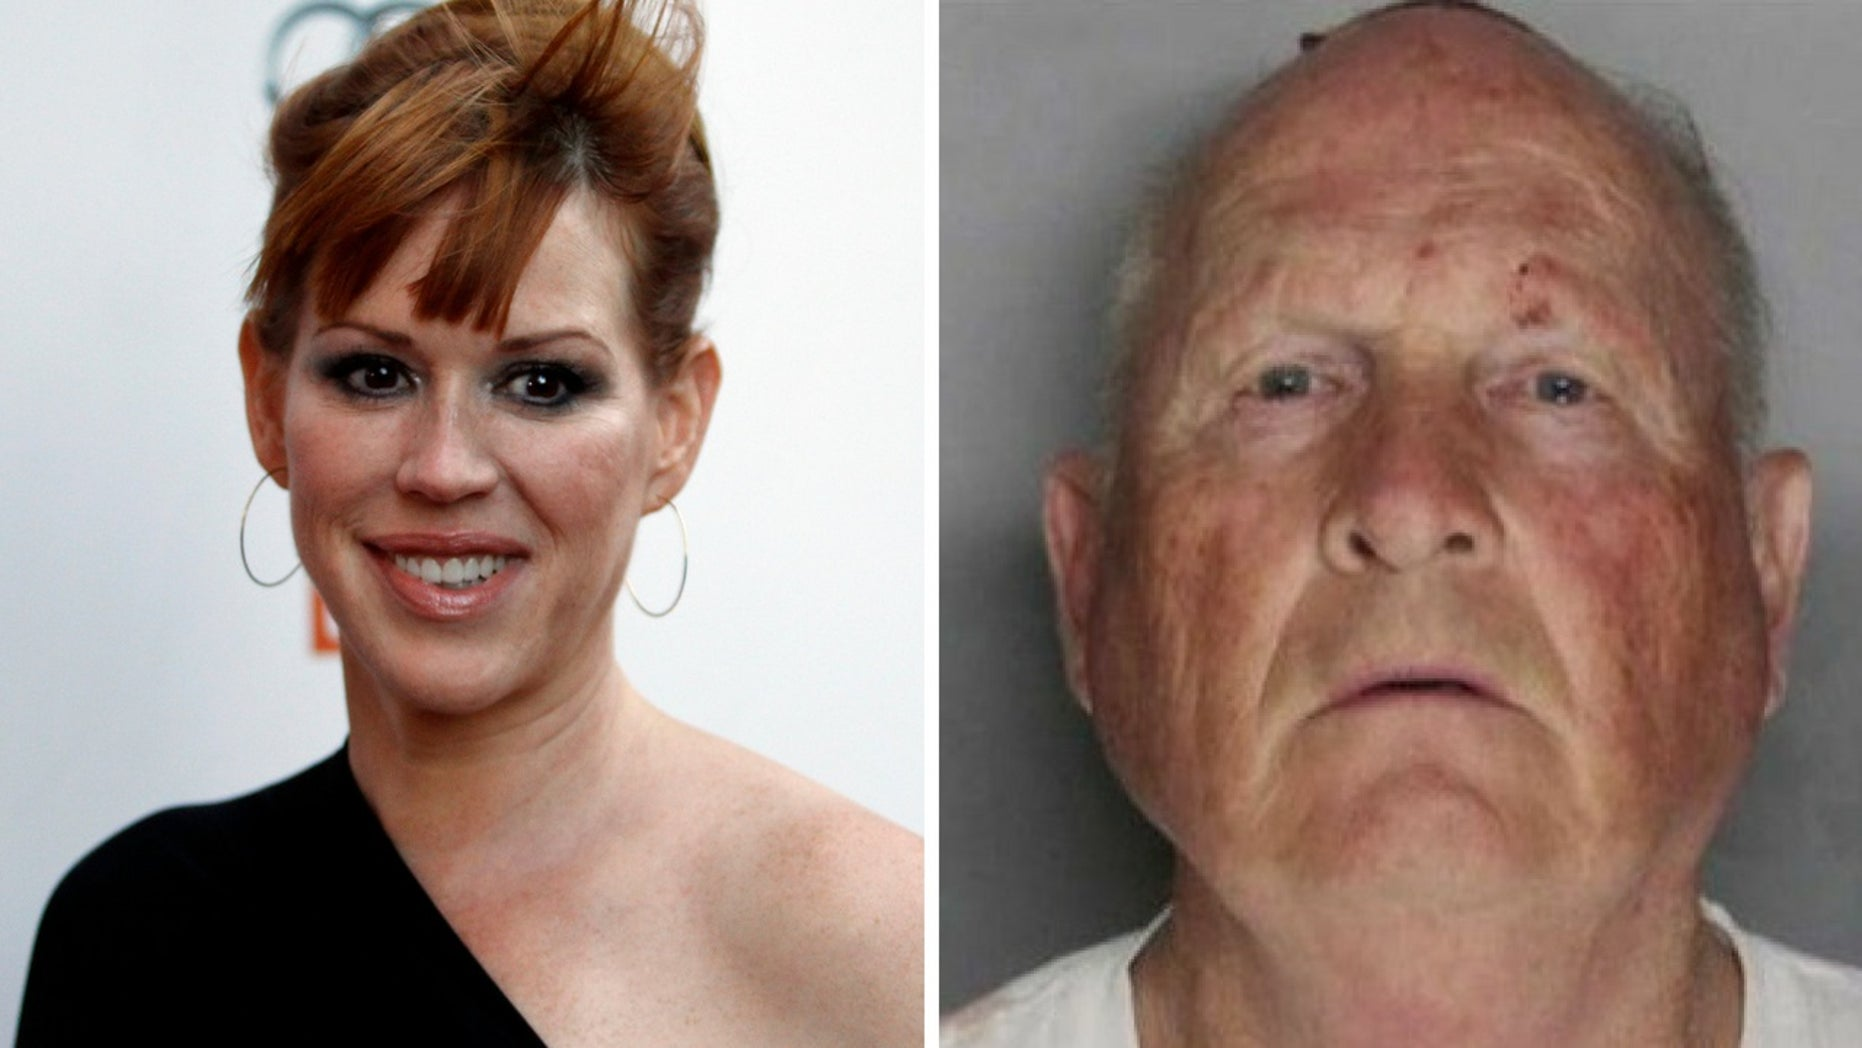 Molly Ringwald recalled living in fear as the Golden State Killer committed crimes nearby to her home. Last month, James DeAngelo [right] was arrested in connection to the Golden State Killer's crimes.